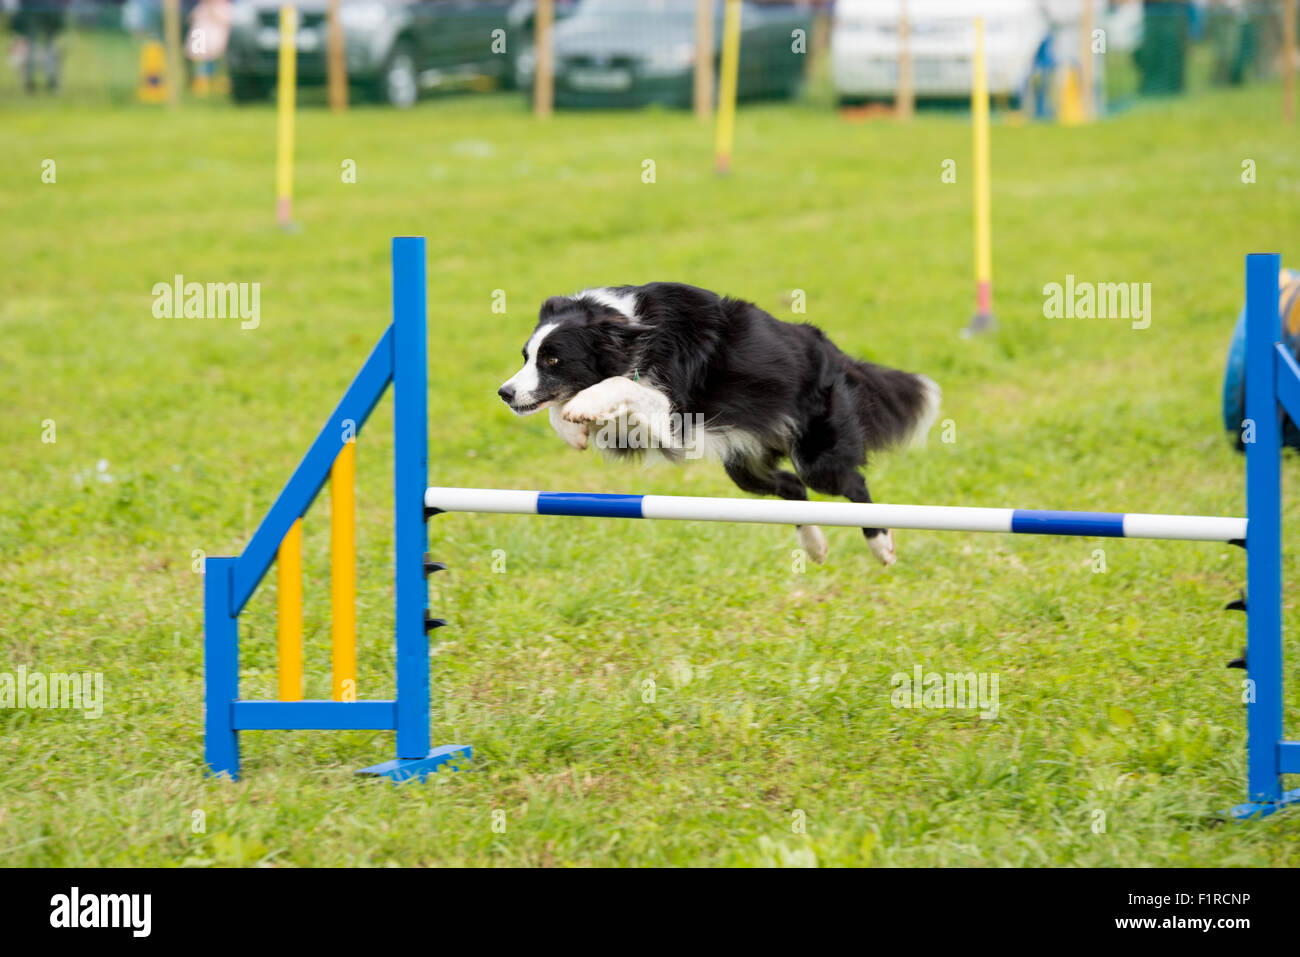 Dog Agility Competition Video